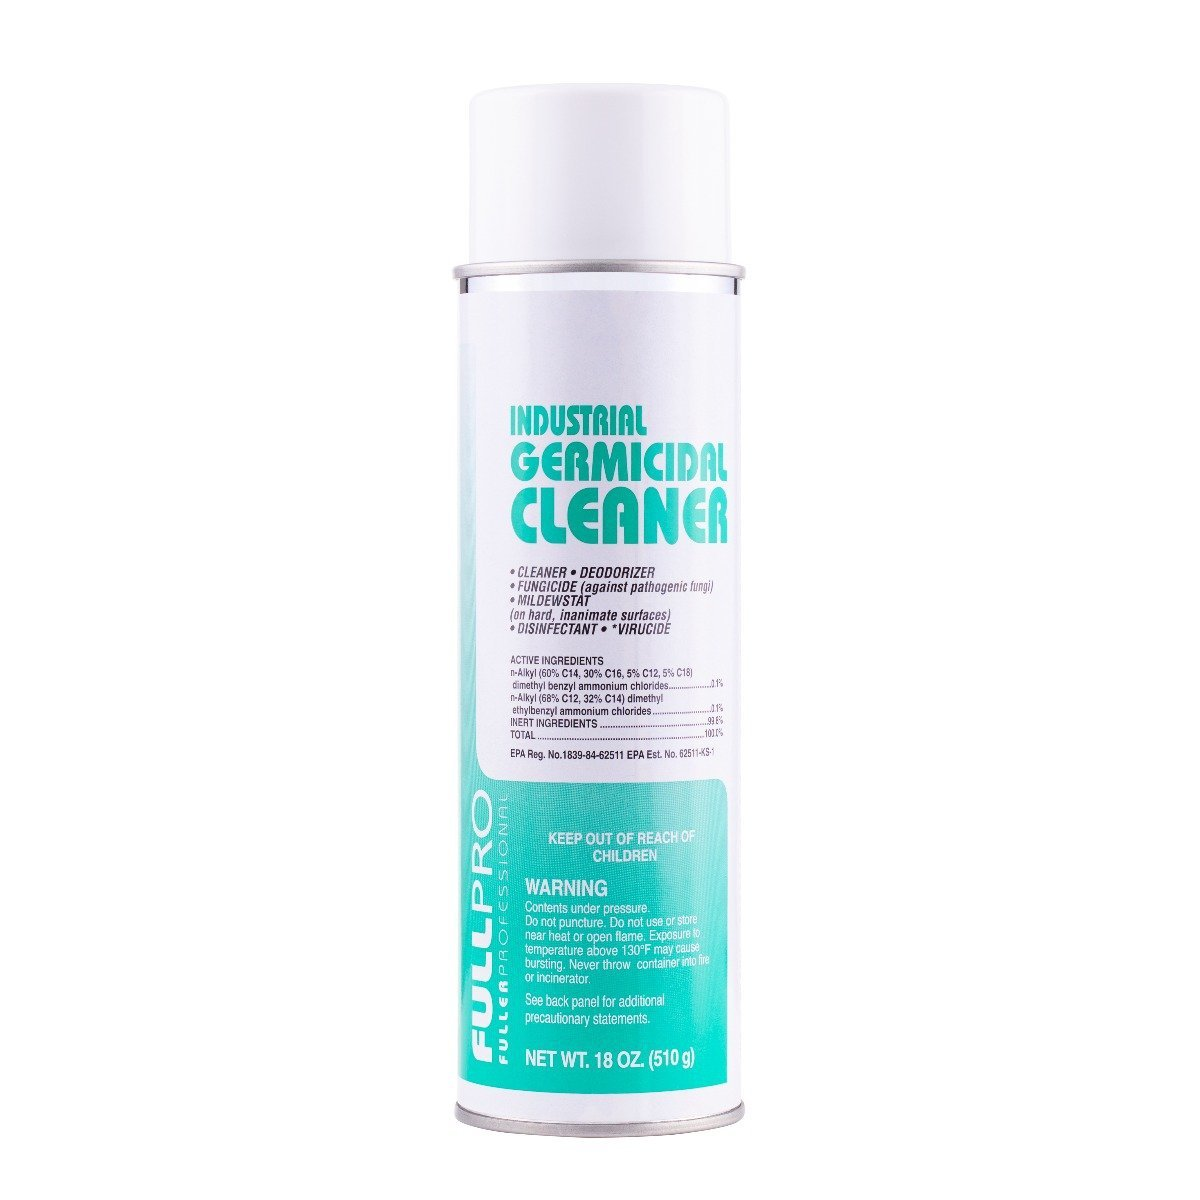 Industrial Germicidal Cleaner - Cleans deodorizes and Disinfects 16 oz can-Cleaning Agents-Fuller Brush Company